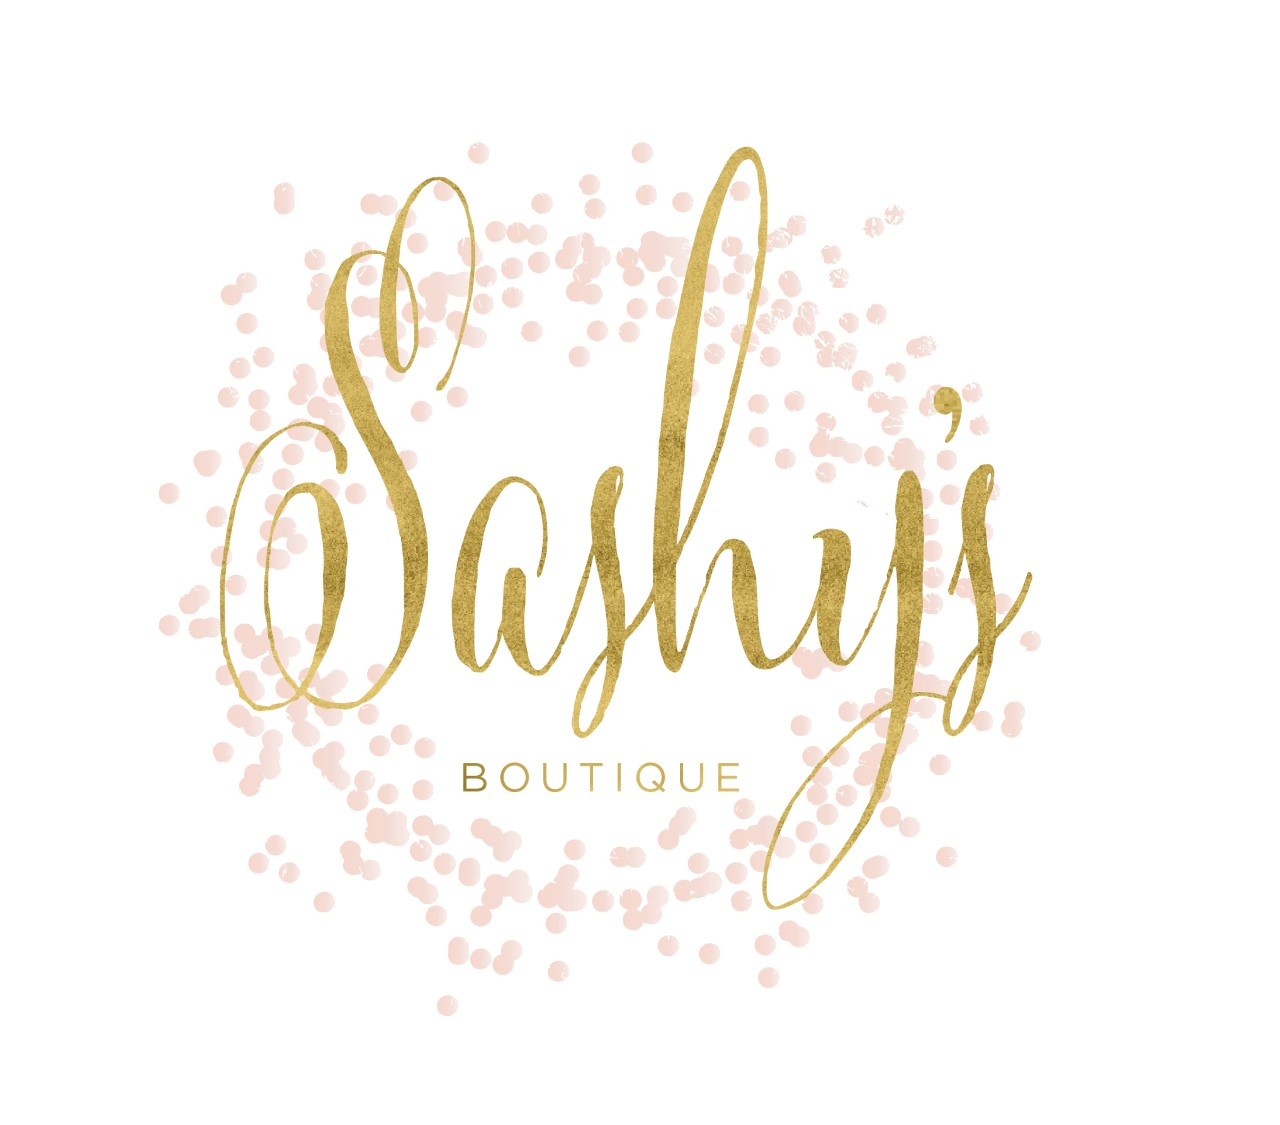 Sashy's Boutique